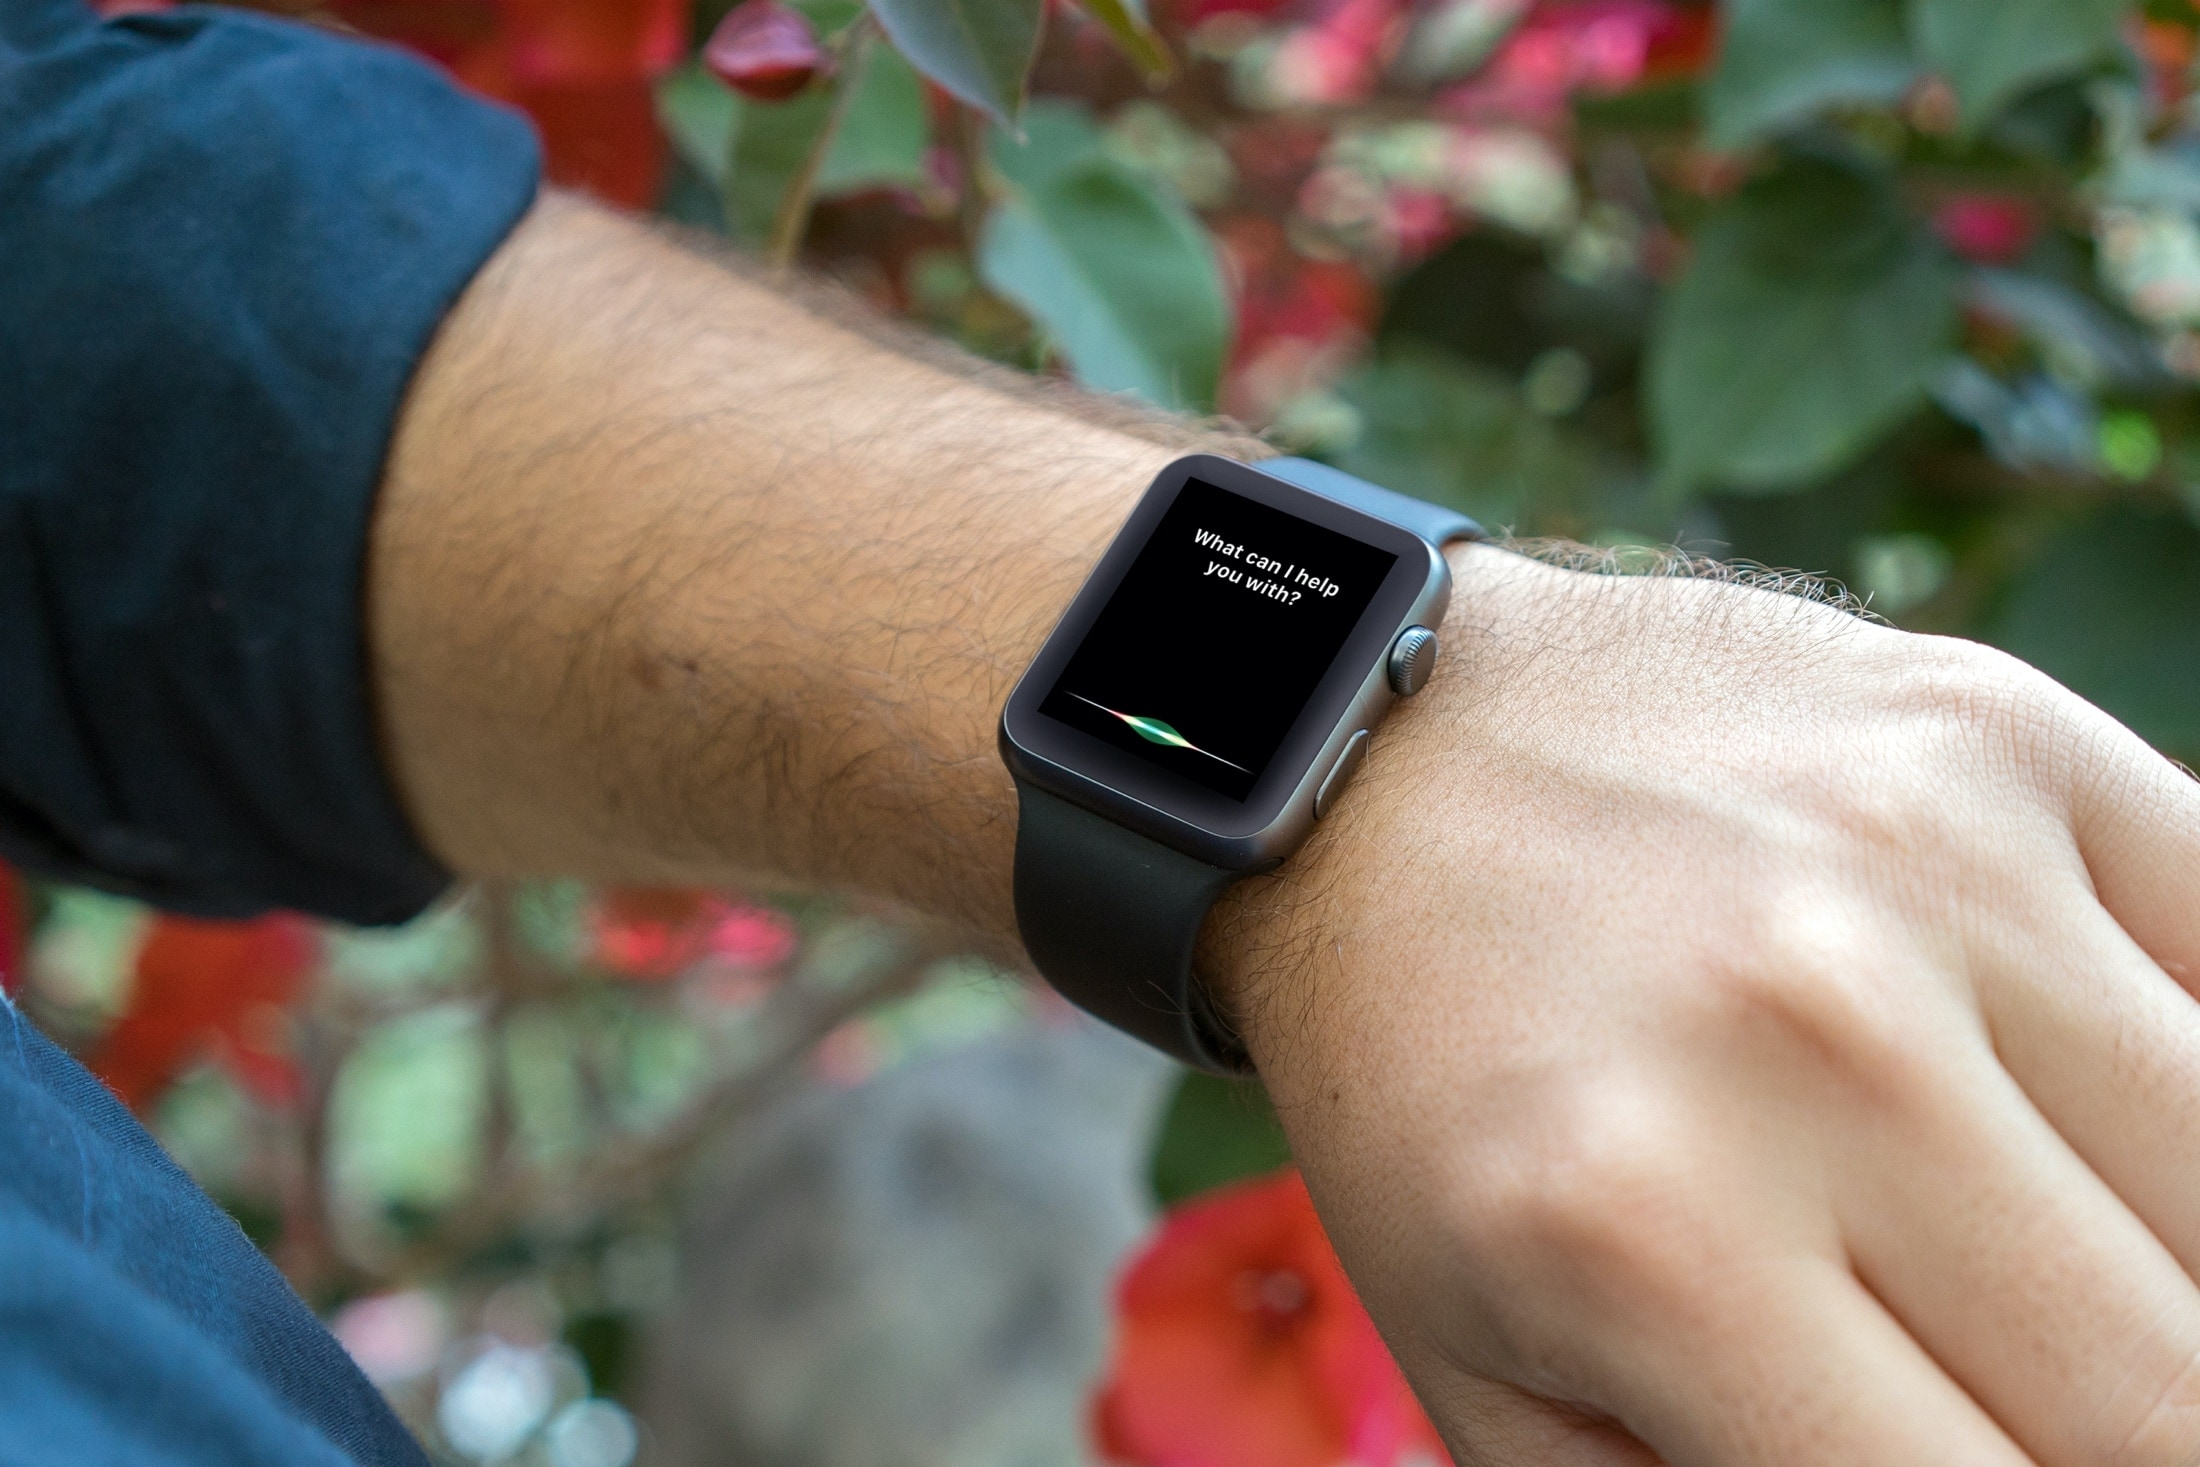 Siri Screen on Apple Watch Garden